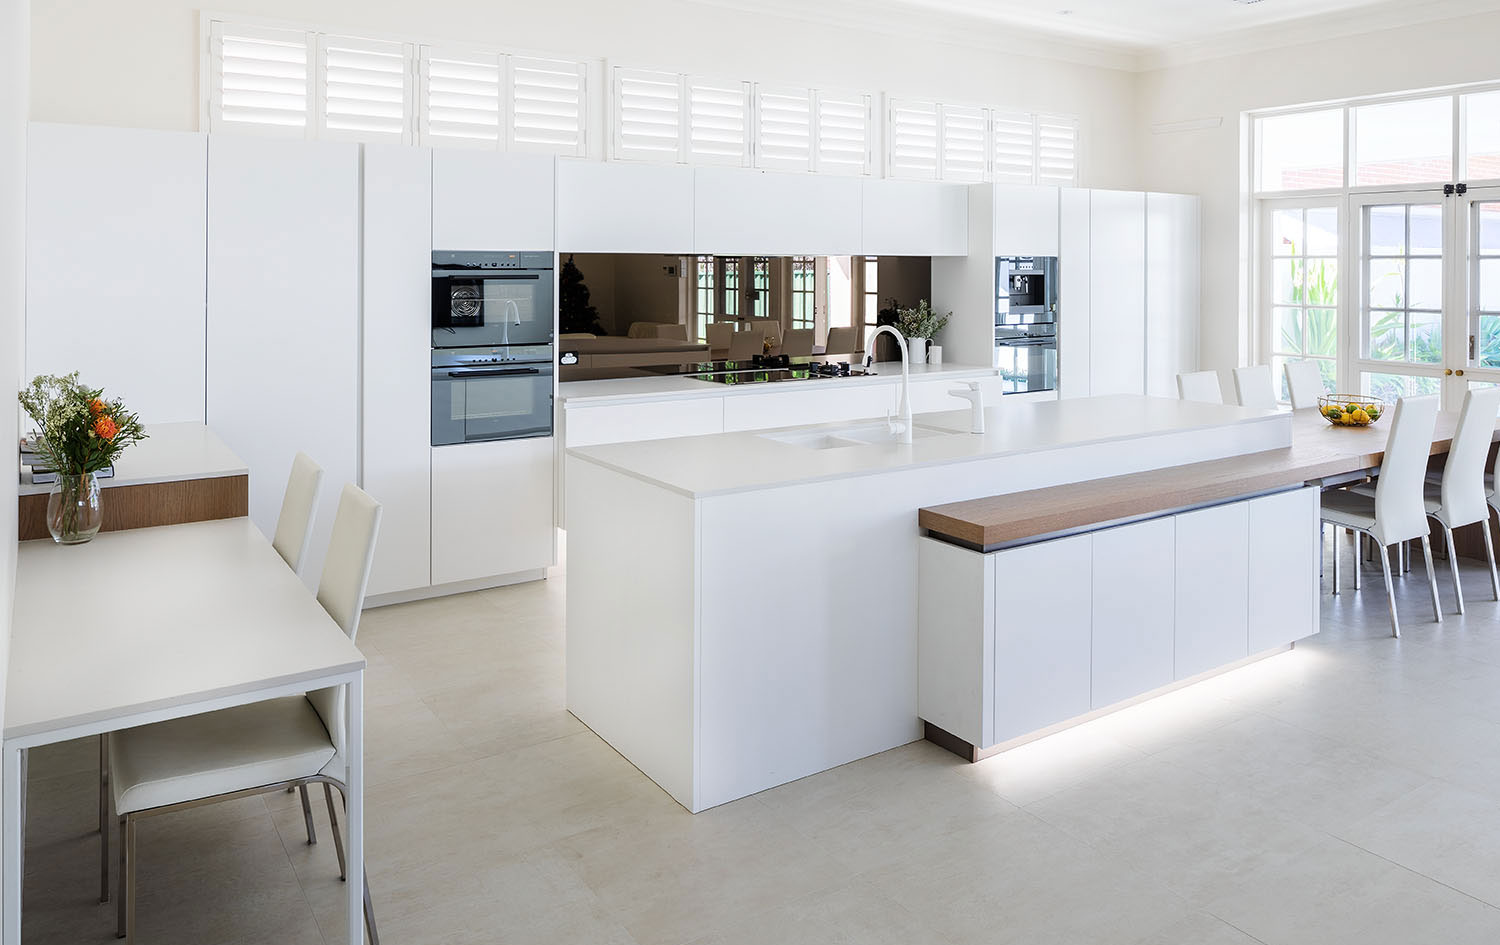 Where modern and traditional meet an elegant kitchen design Modern elegant kitchen design